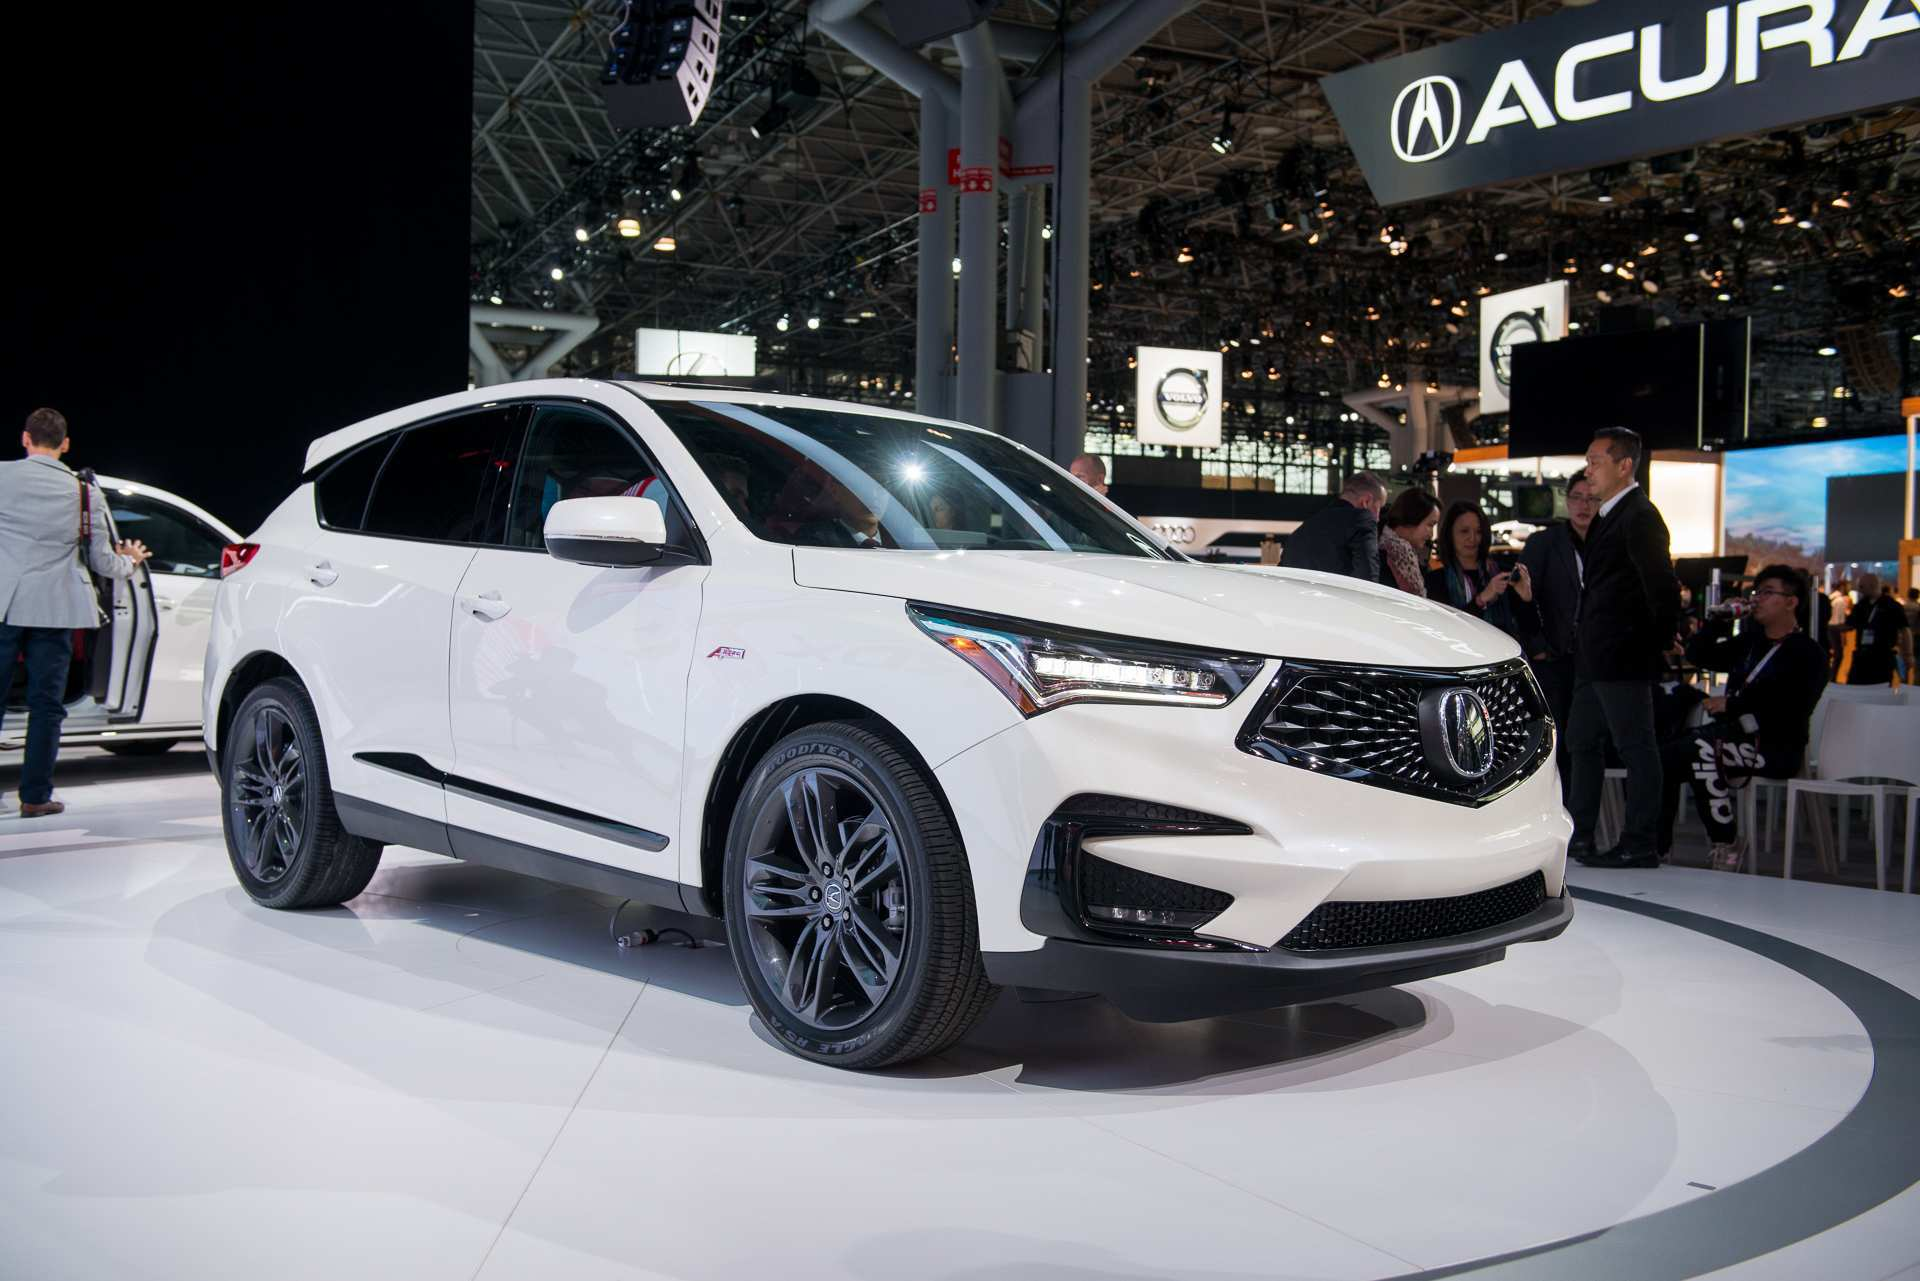 57 Concept of 2019 Acura Suv Picture with 2019 Acura Suv